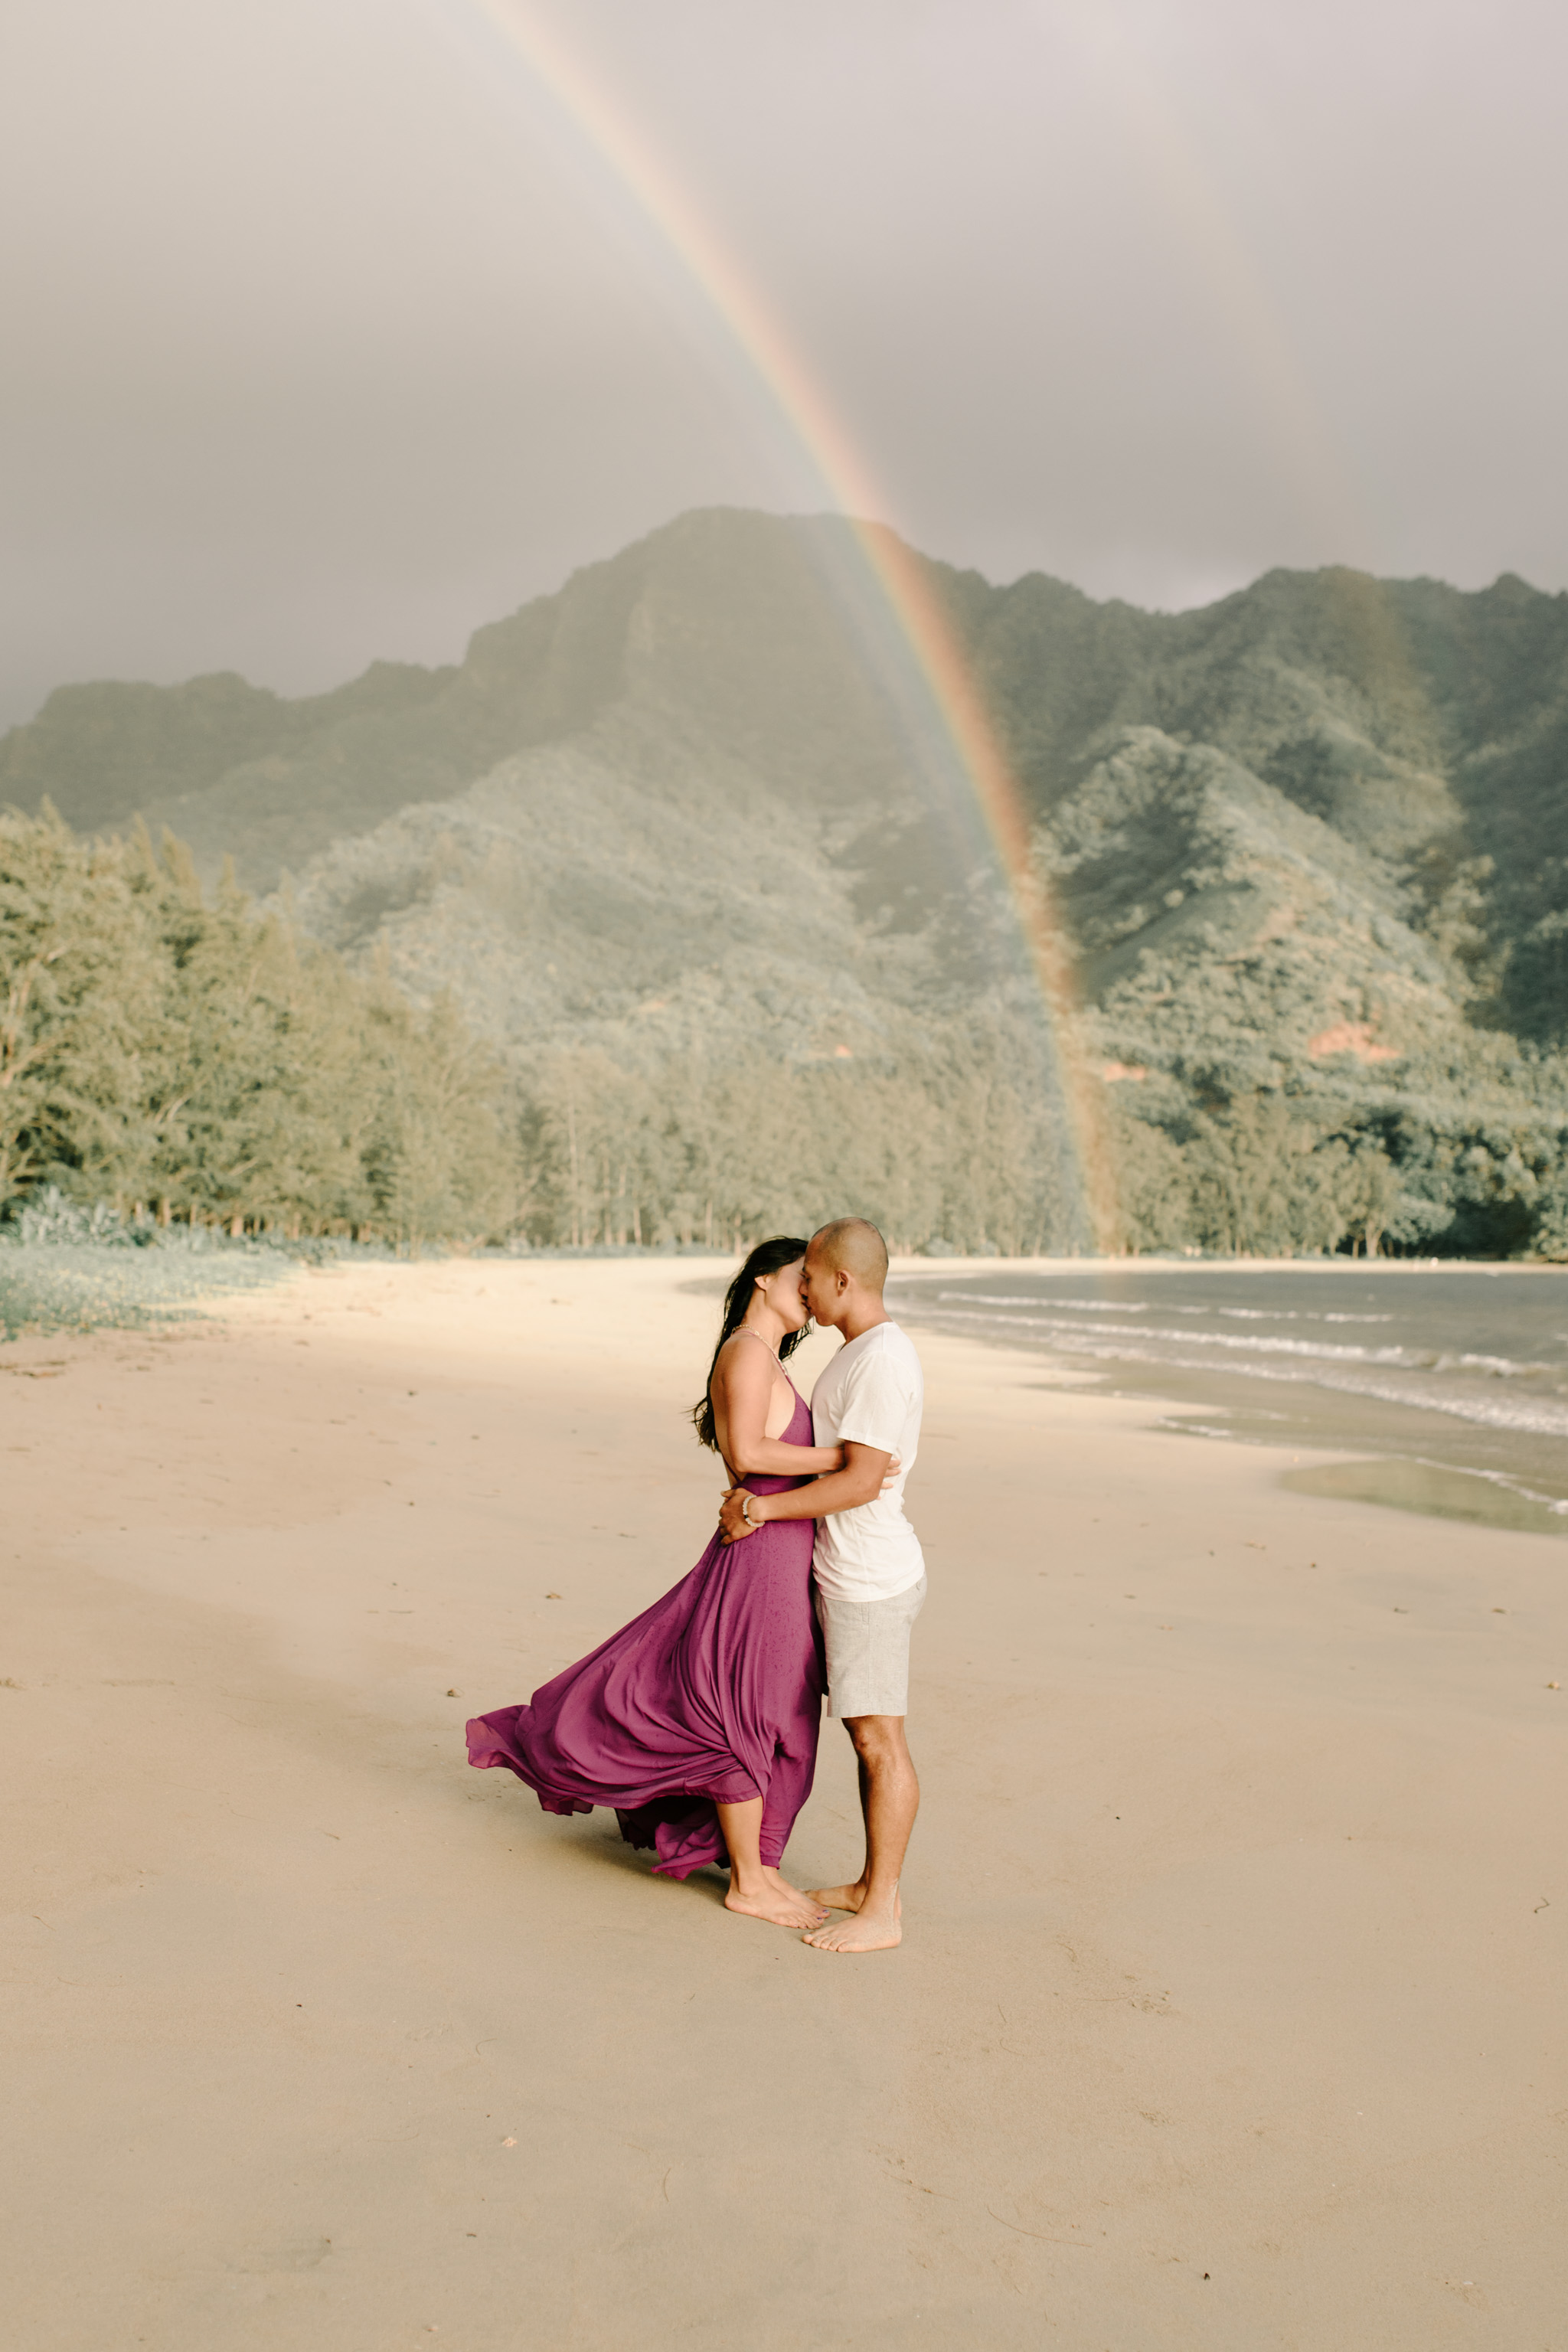 Beautiful Hawaii Couple Photos on the Beach with a Gorgeous Rainbow in the Background - Photo by Oahu Couple Photographer Desiree Leilani